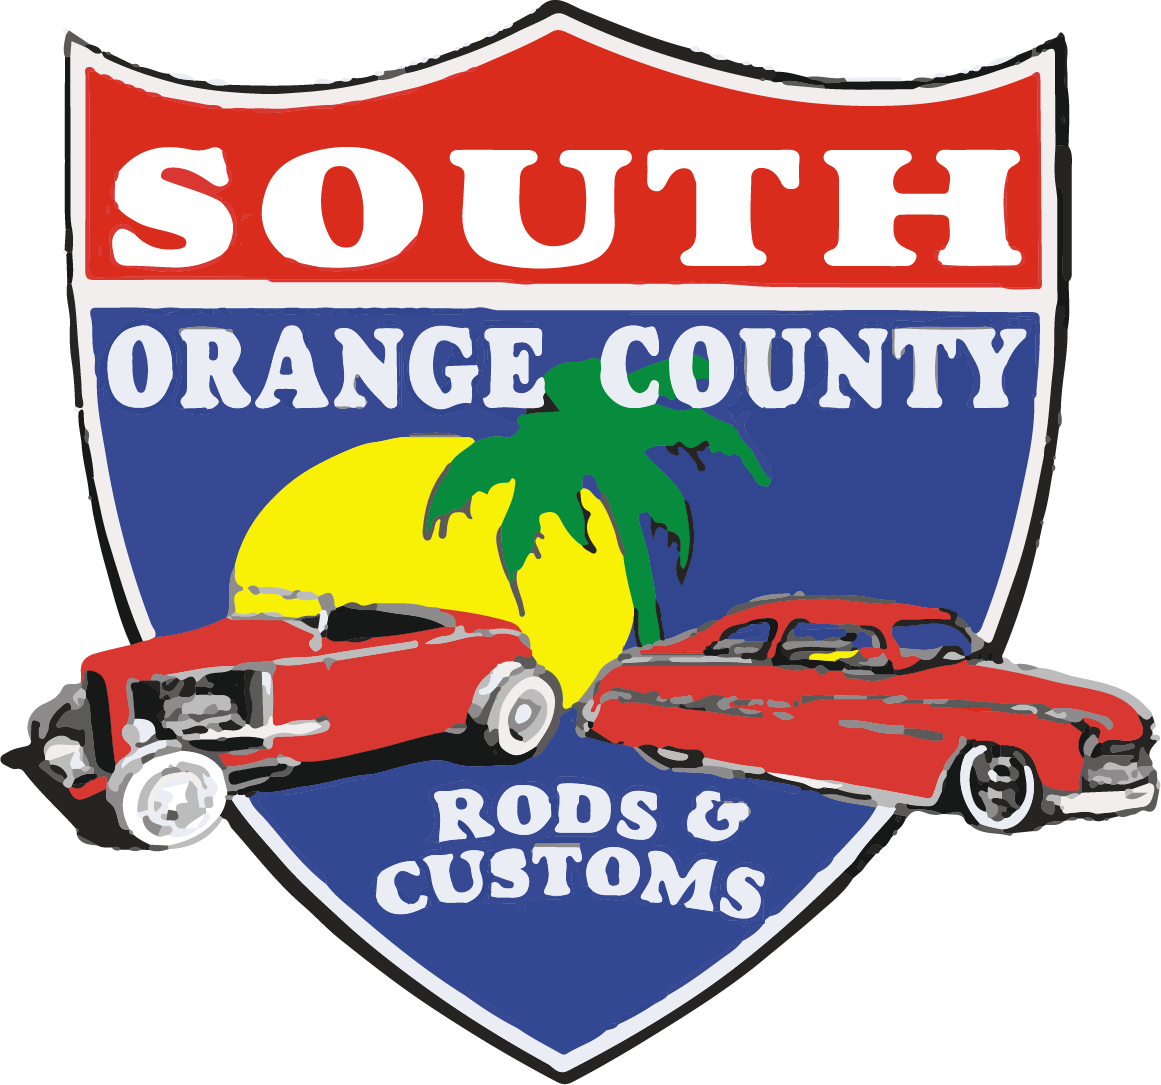 South Orange County Rod and Customs